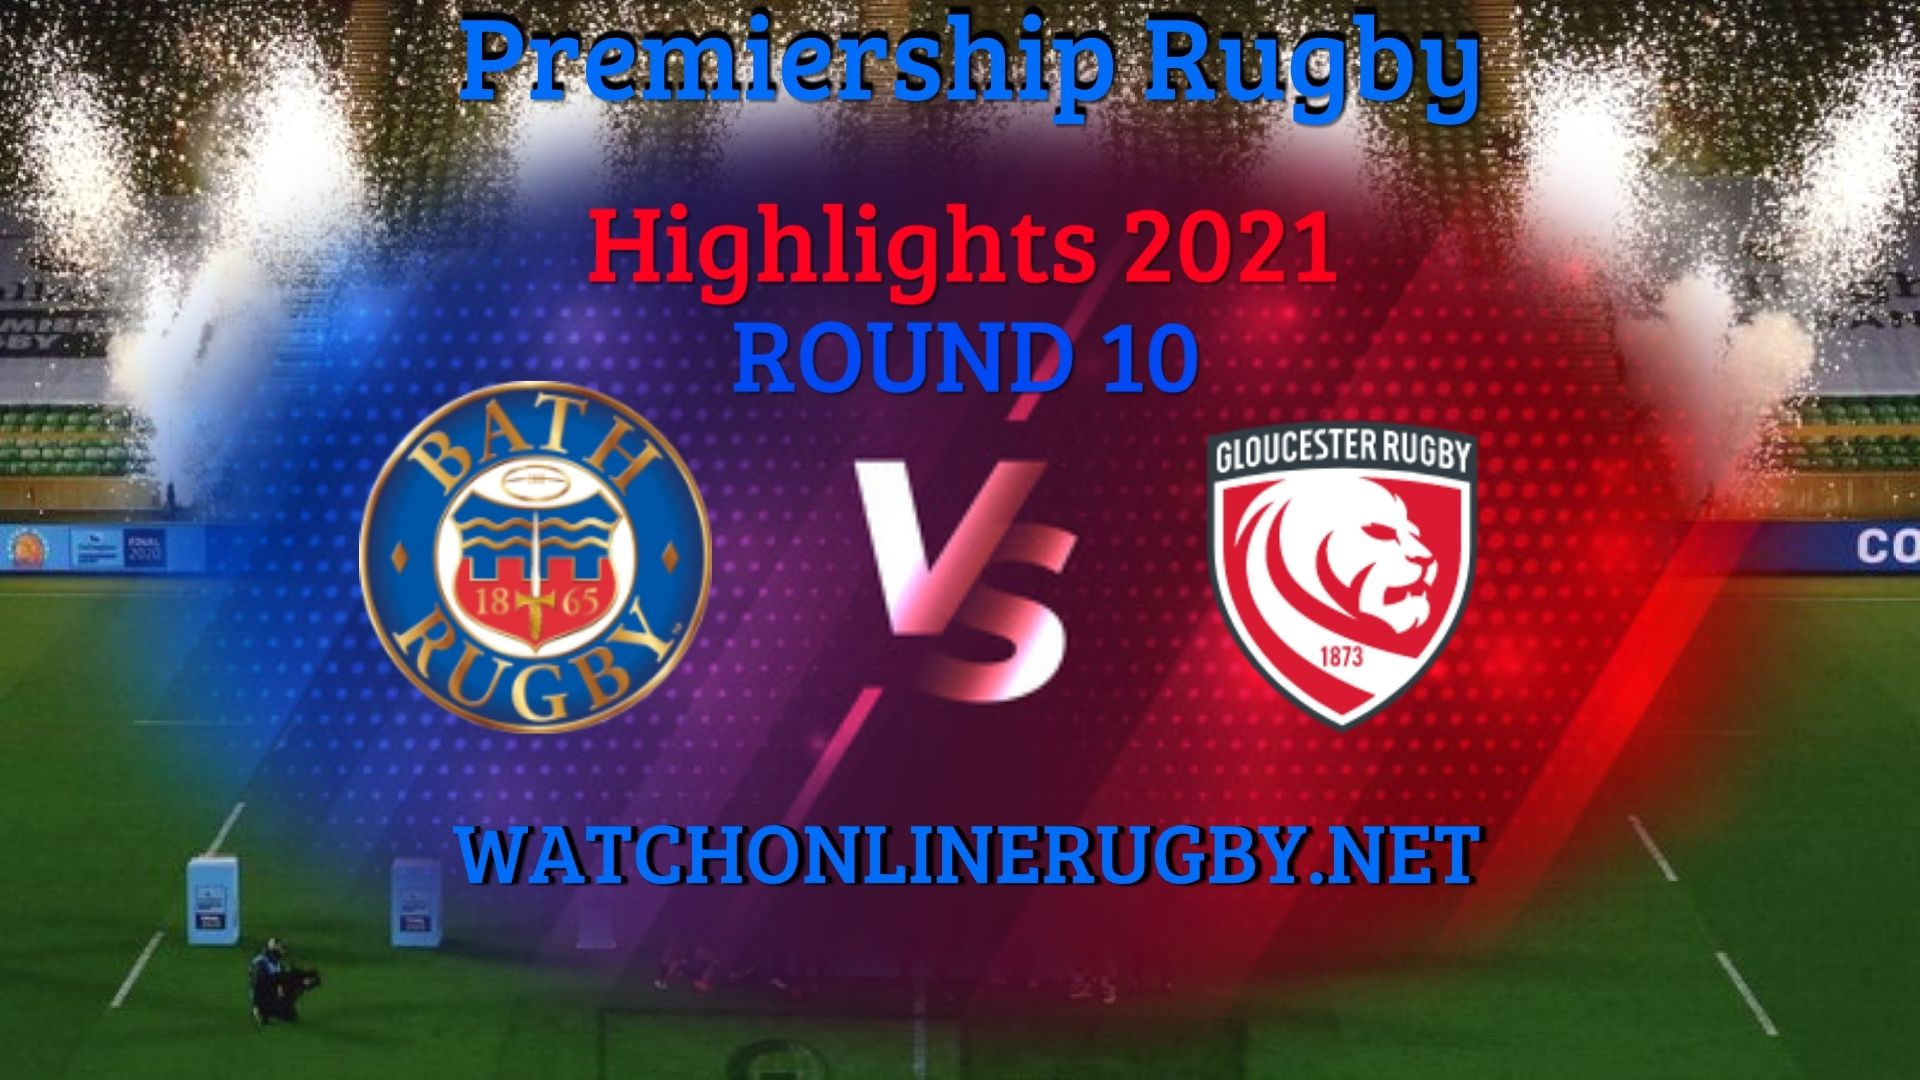 Bath Rugby Vs Gloucester Rugby Premiership Rugby 2021 RD 10